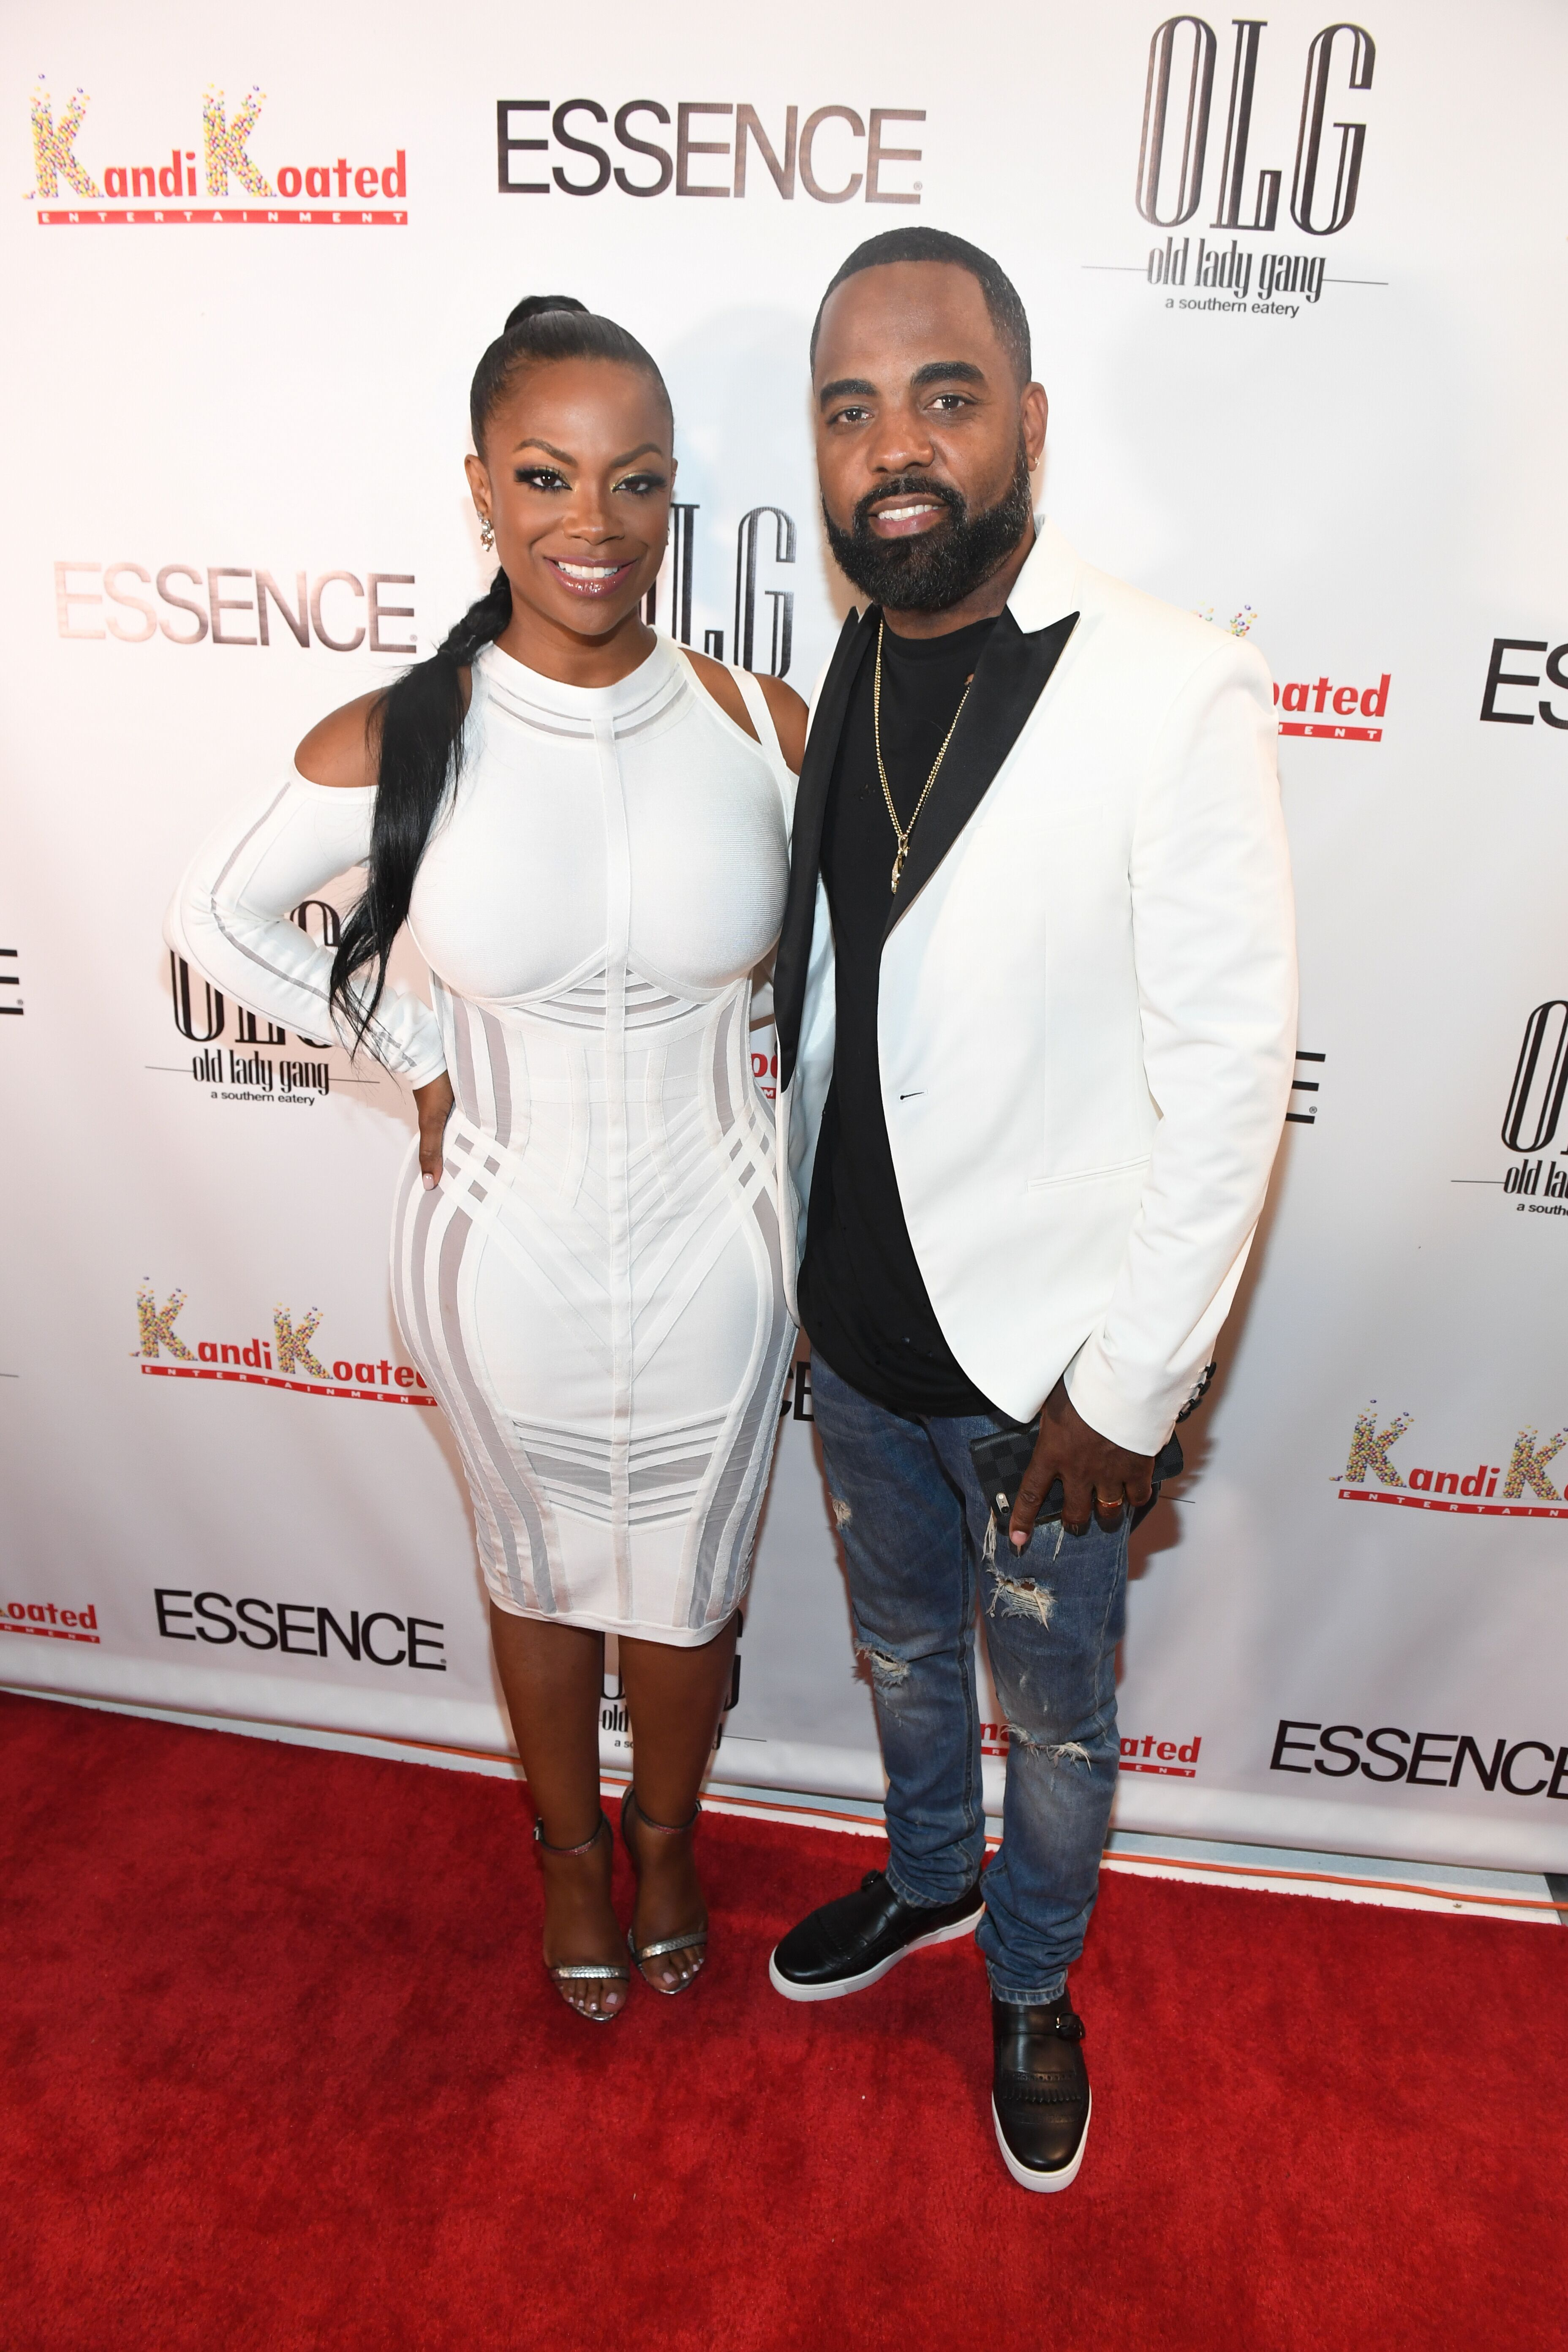 Kandi Burruss and Todd Tucker at Essence Magazine Celebrates October Cover Star Kandi Burruss. | Source: Getty Images